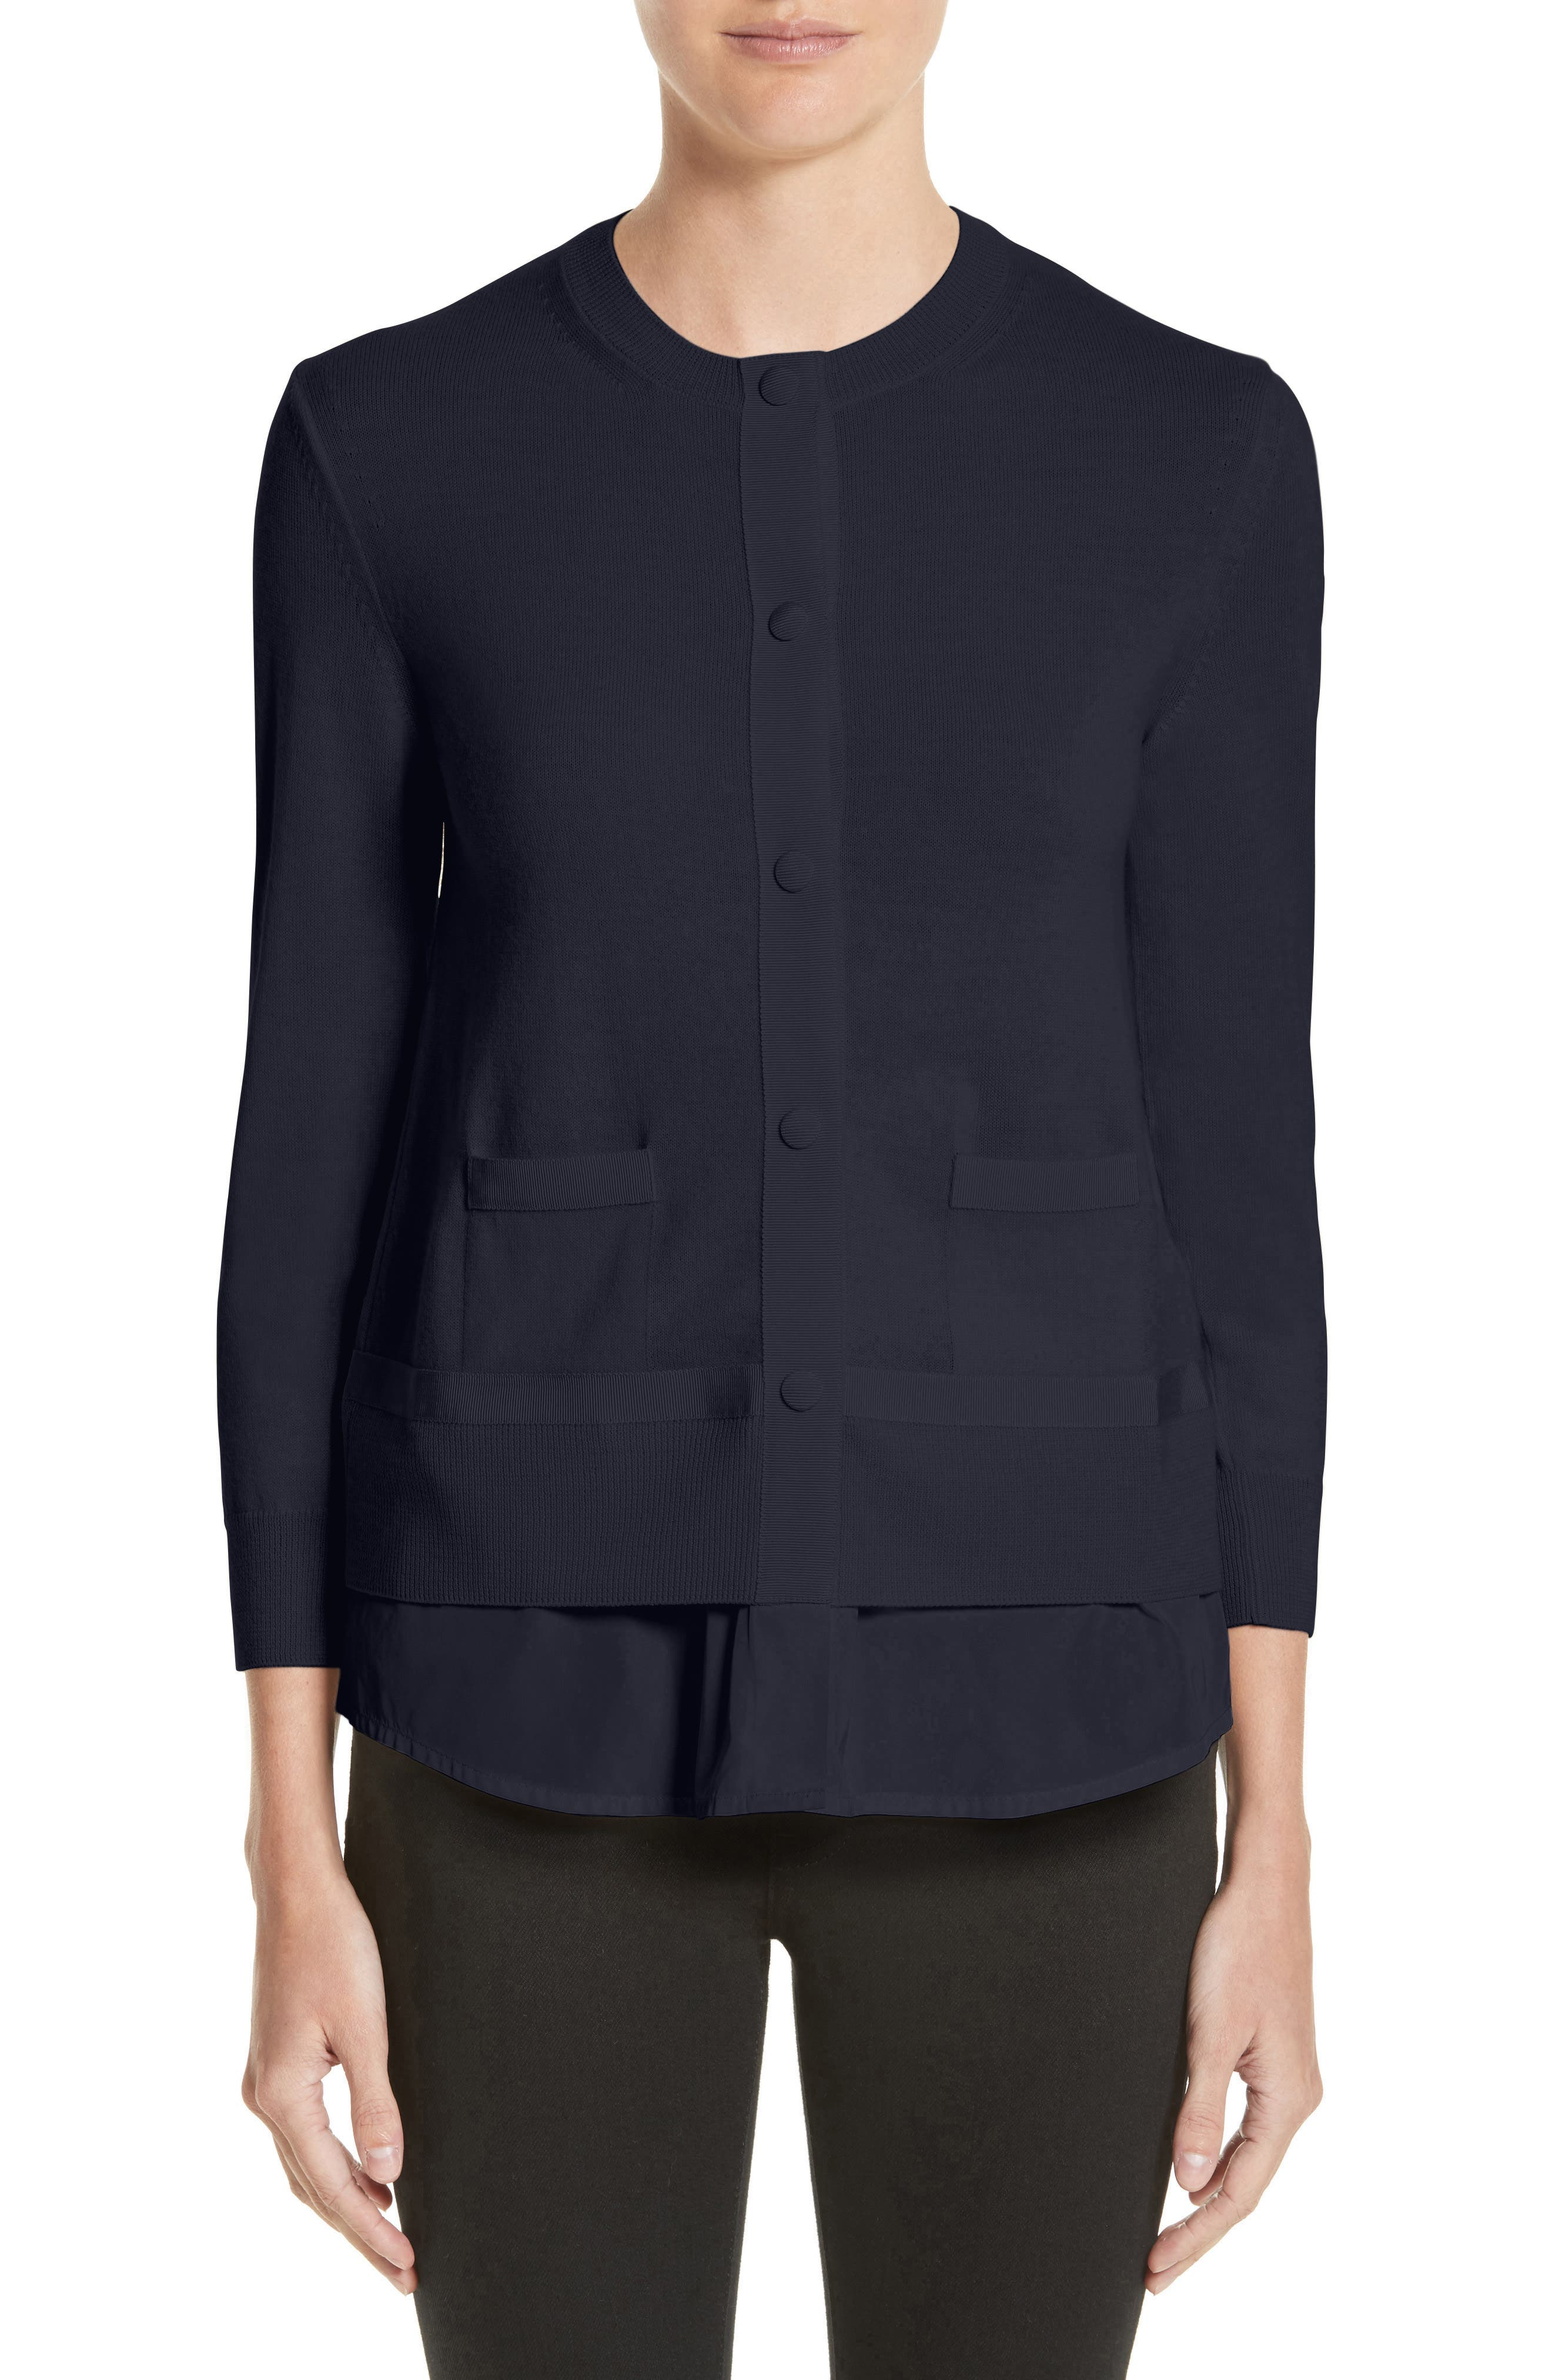 Tricot Cardigan,                         Main,                         color, Navy